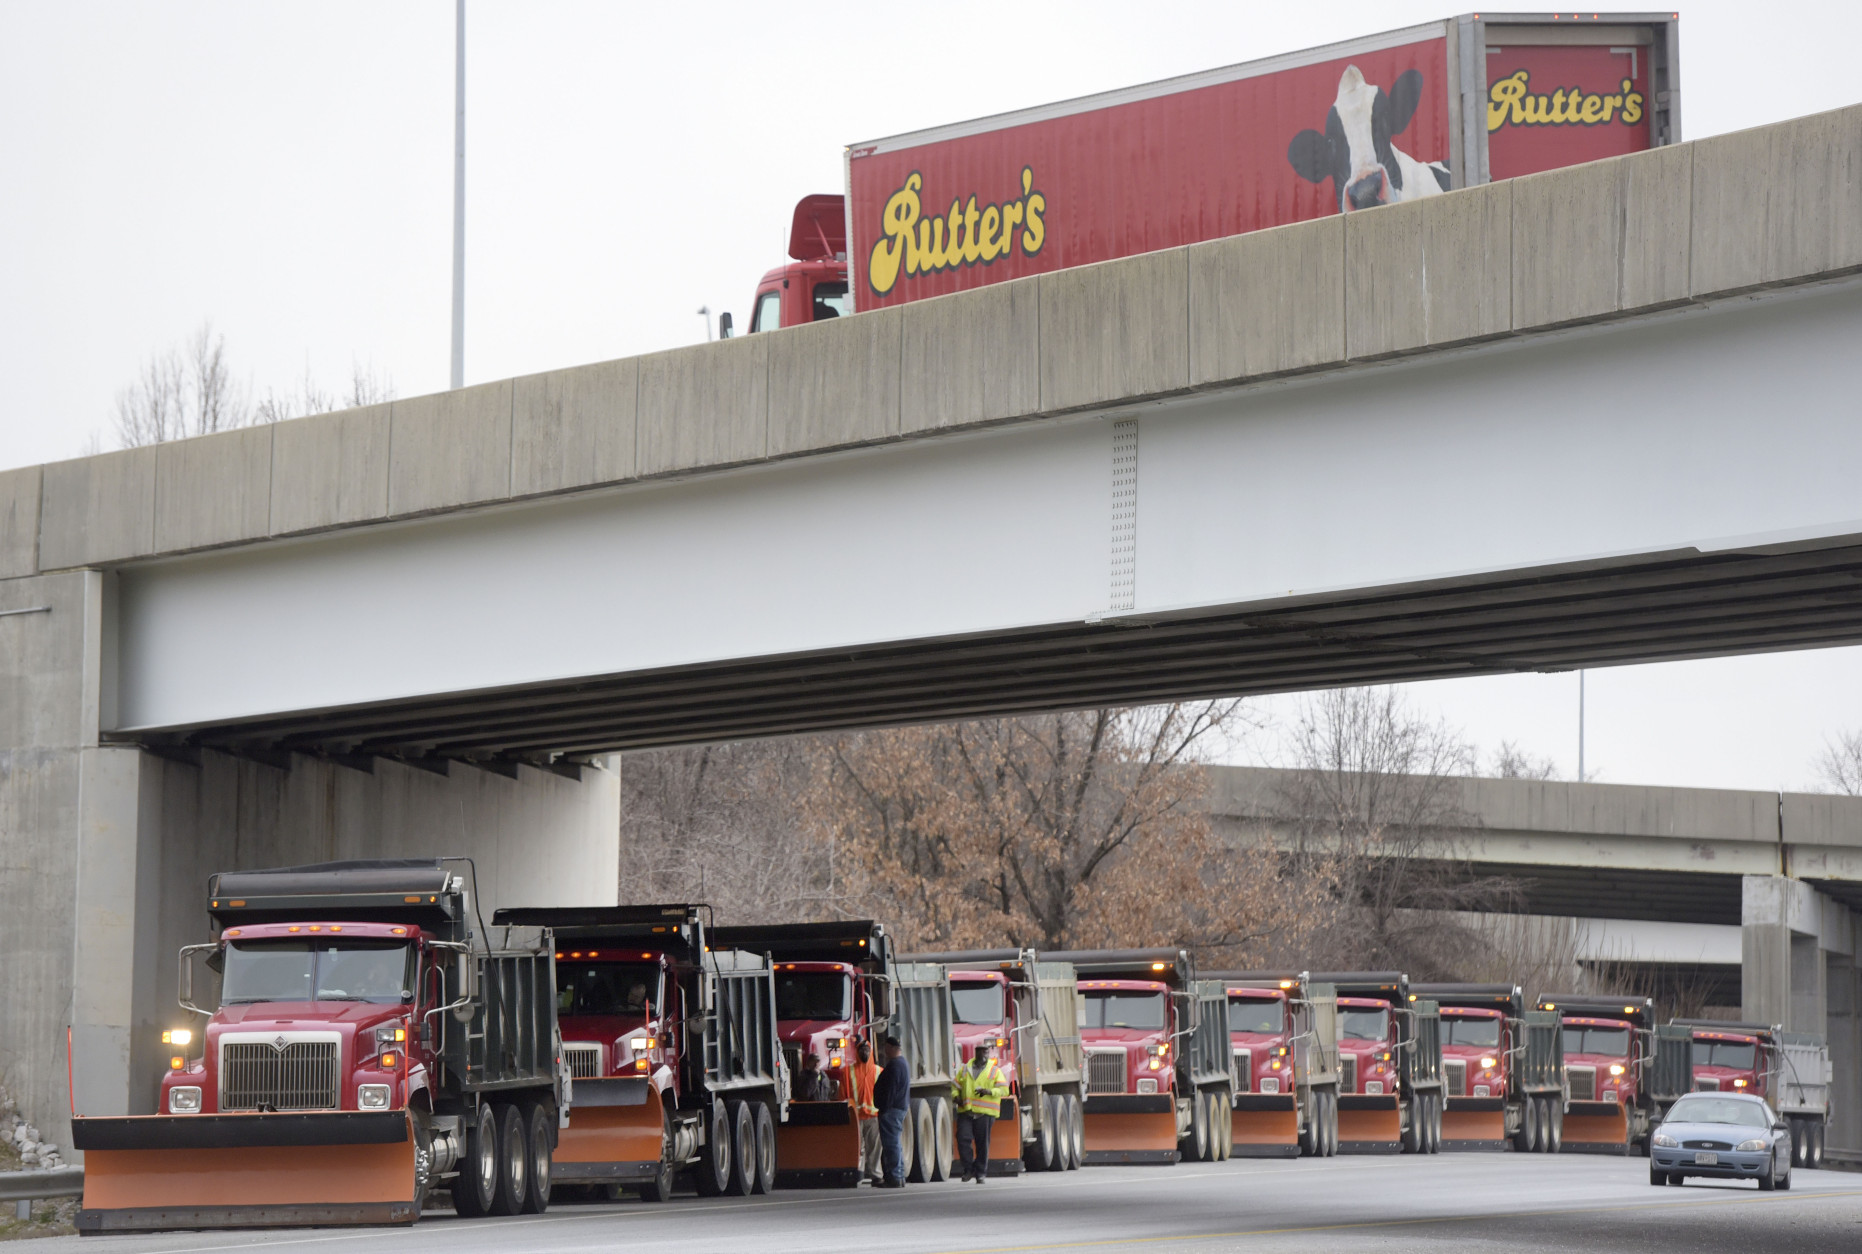 Snowplow operators gather on Interstate 97 as a dairy truck, top, moves along an overpass, Friday, Jan. 22, 2016, in Glen Burnie, Md., near Baltimore. (AP Photo/Steve Ruark)